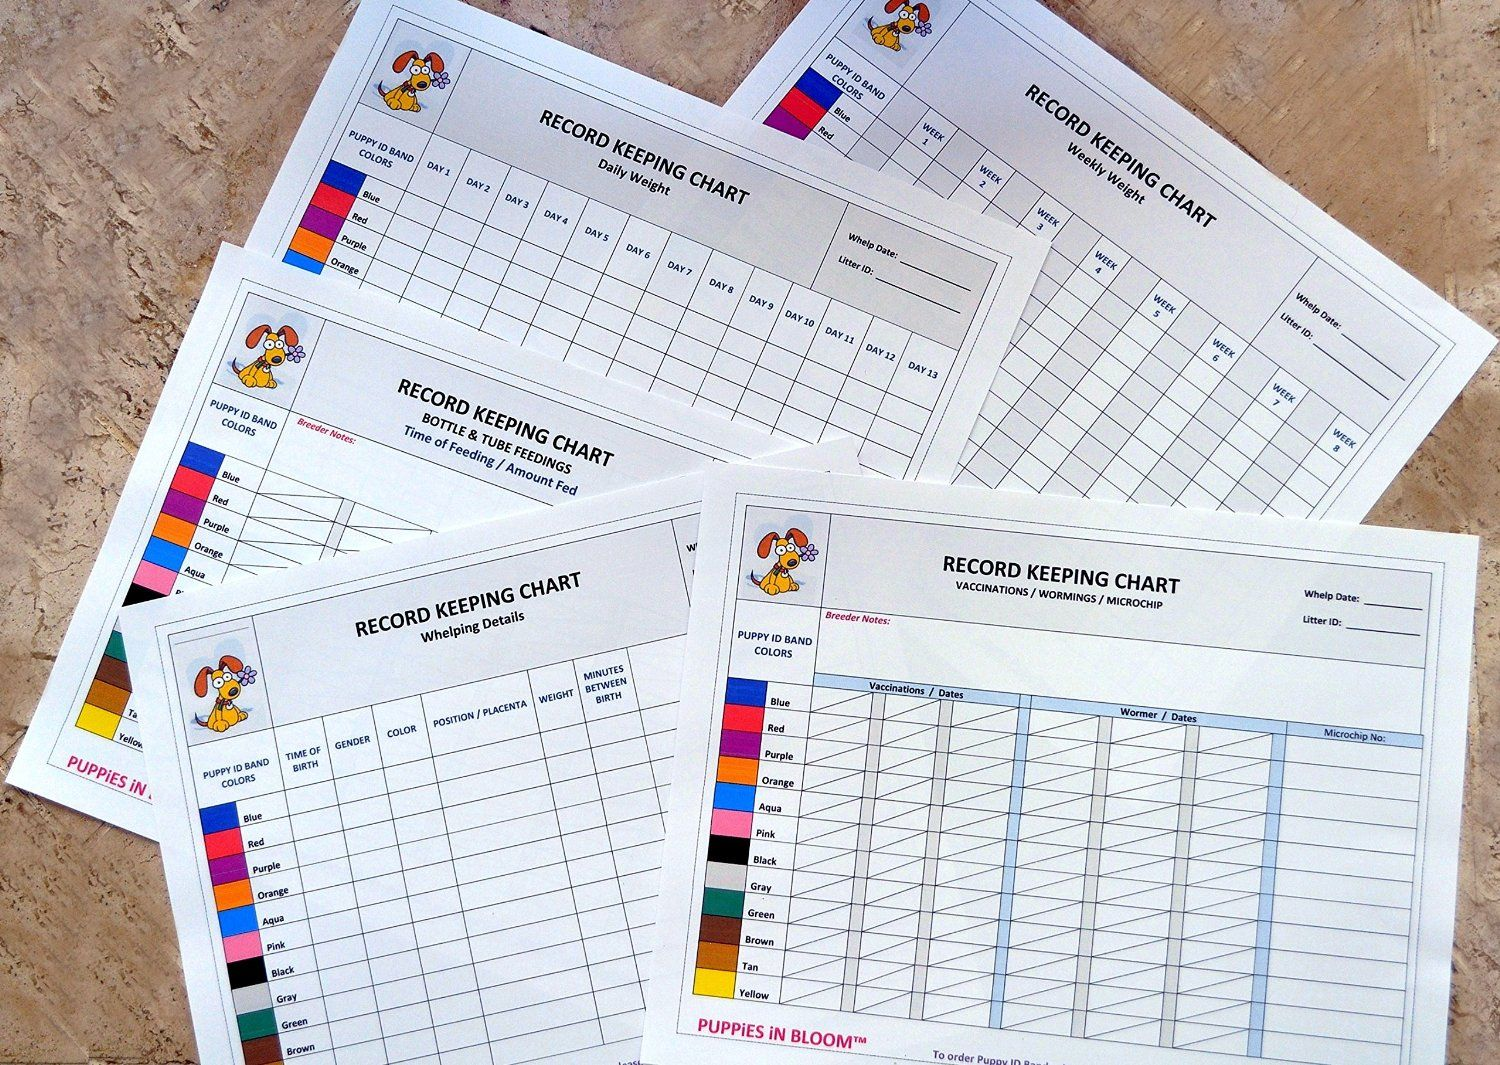 Puppy Growth Chart Template Record Keeping Charts For Breeders U2014 FREE  Printable Puppy Forms